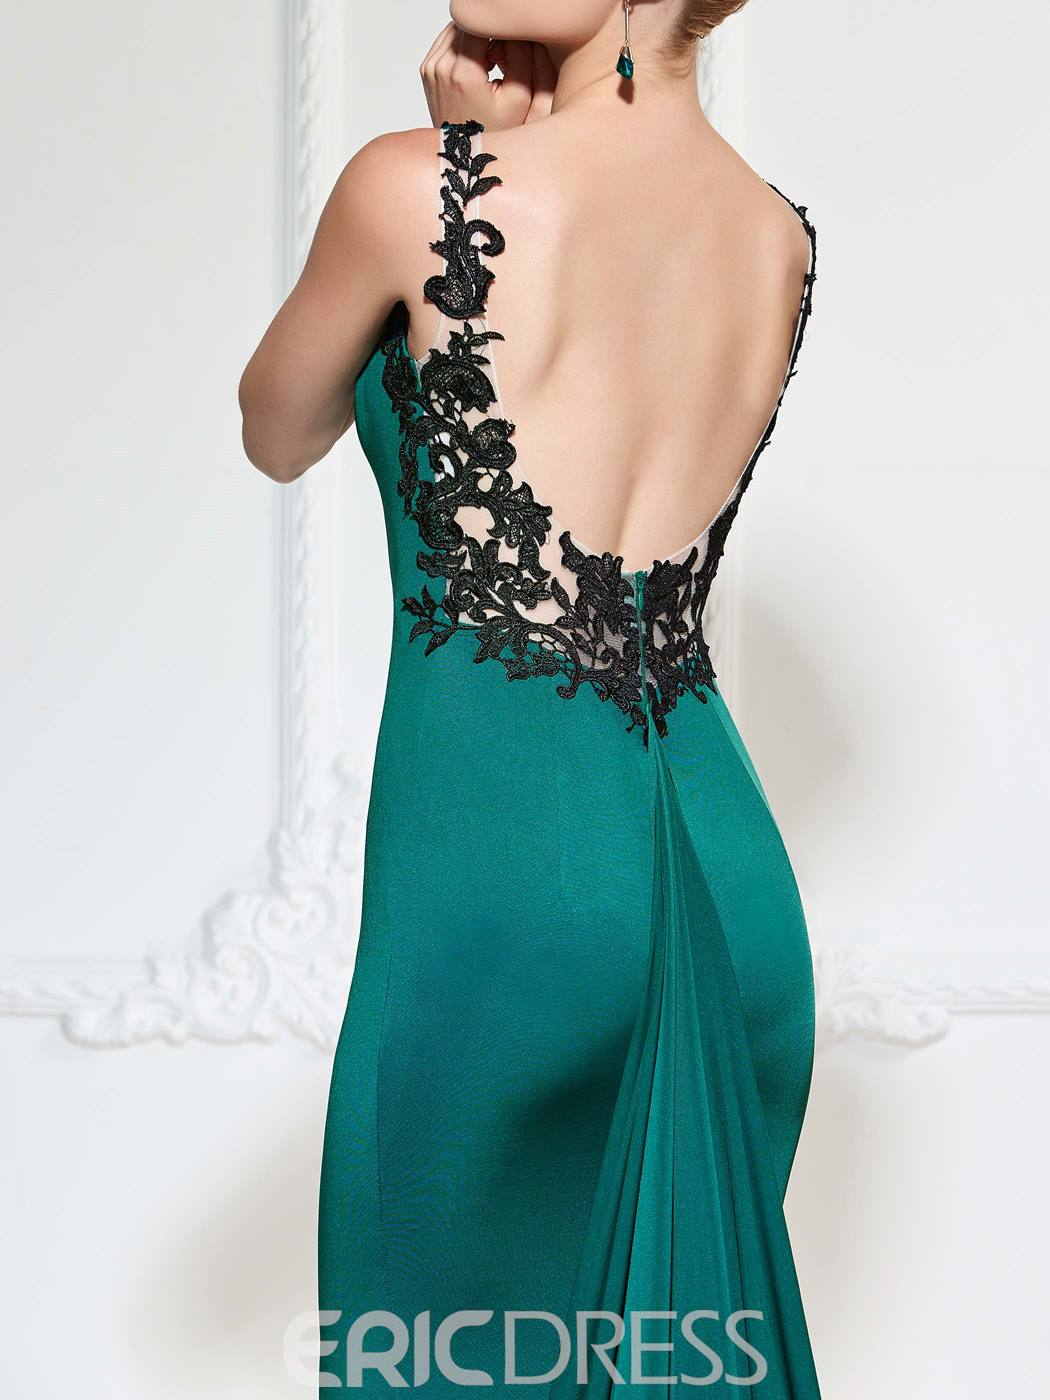 Ericdress Straps Appliques Low Back Mermaid Evening Dress